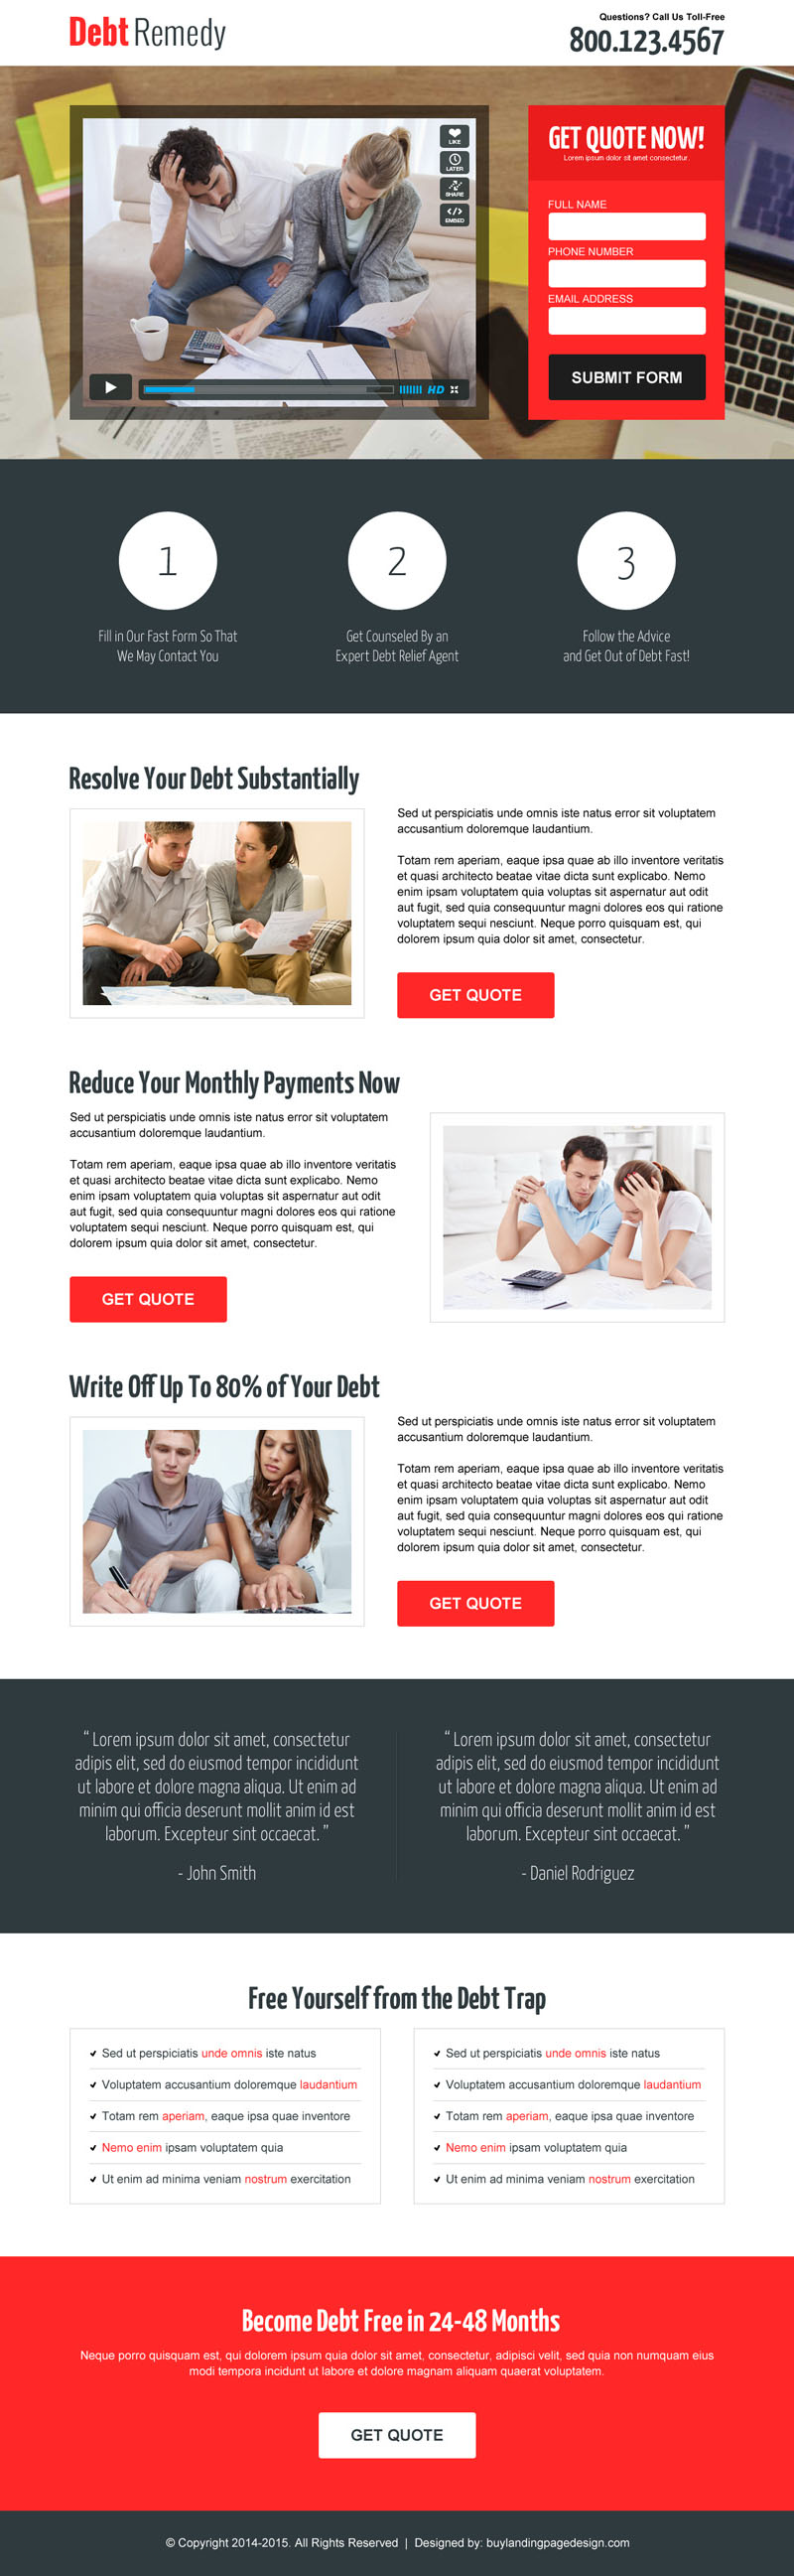 debt relief business converting video lead capture landing page design https://www.buylandingpagedesign.com/buy/debt-relief-business-converting-video-lead-capture-landing-page-design/1435